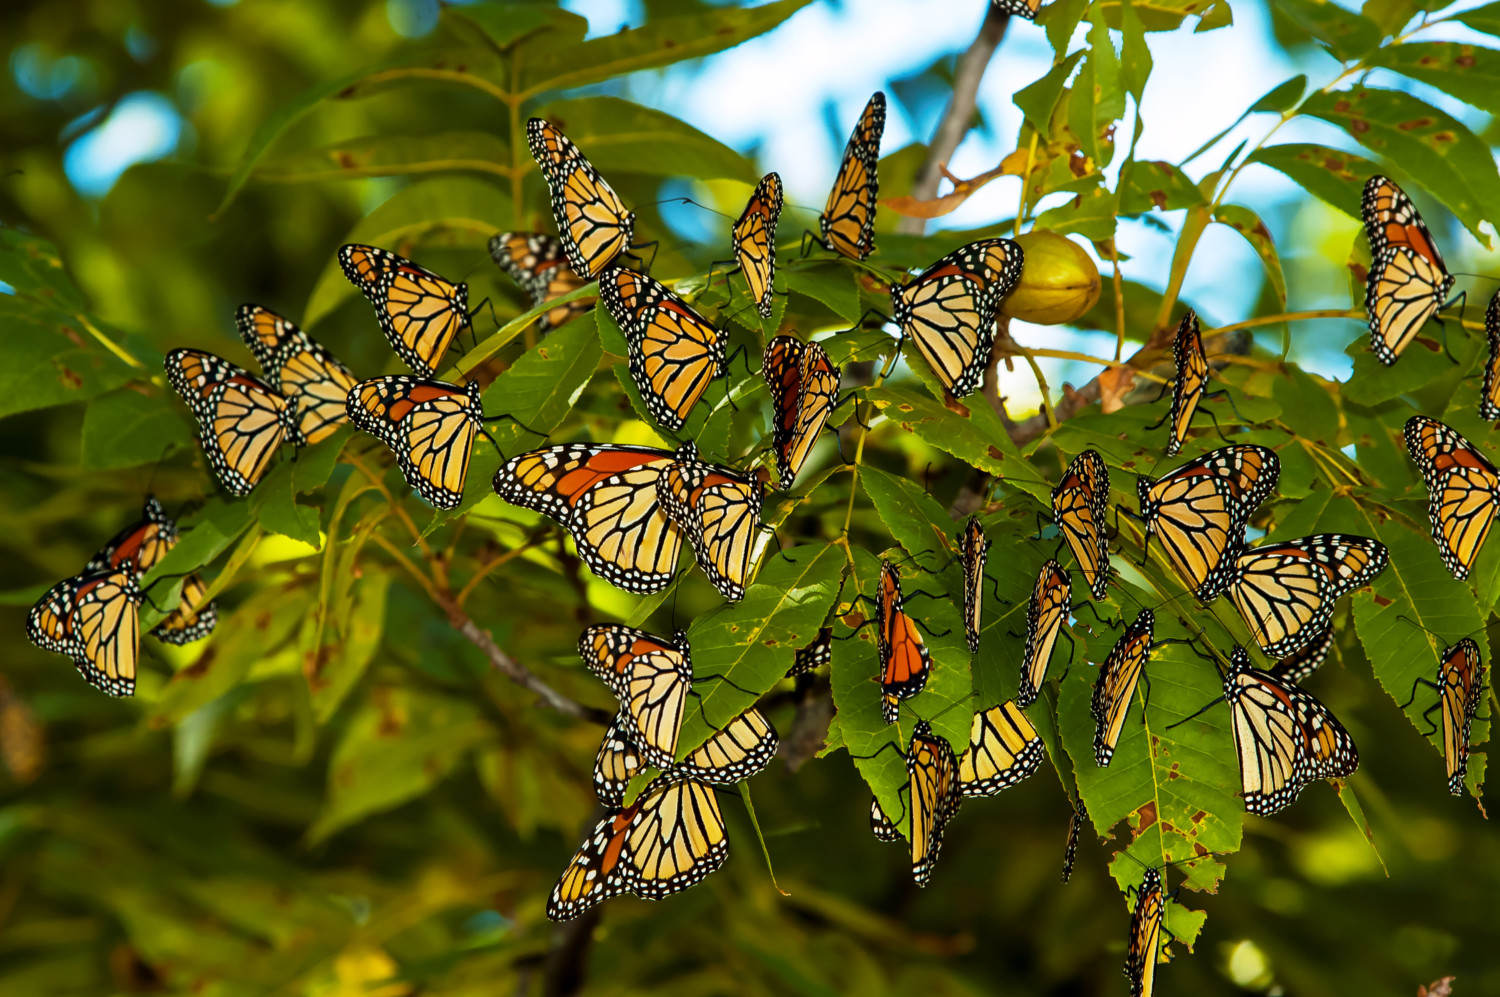 Monarch Butterfly Migration Seems Larger Than Normal